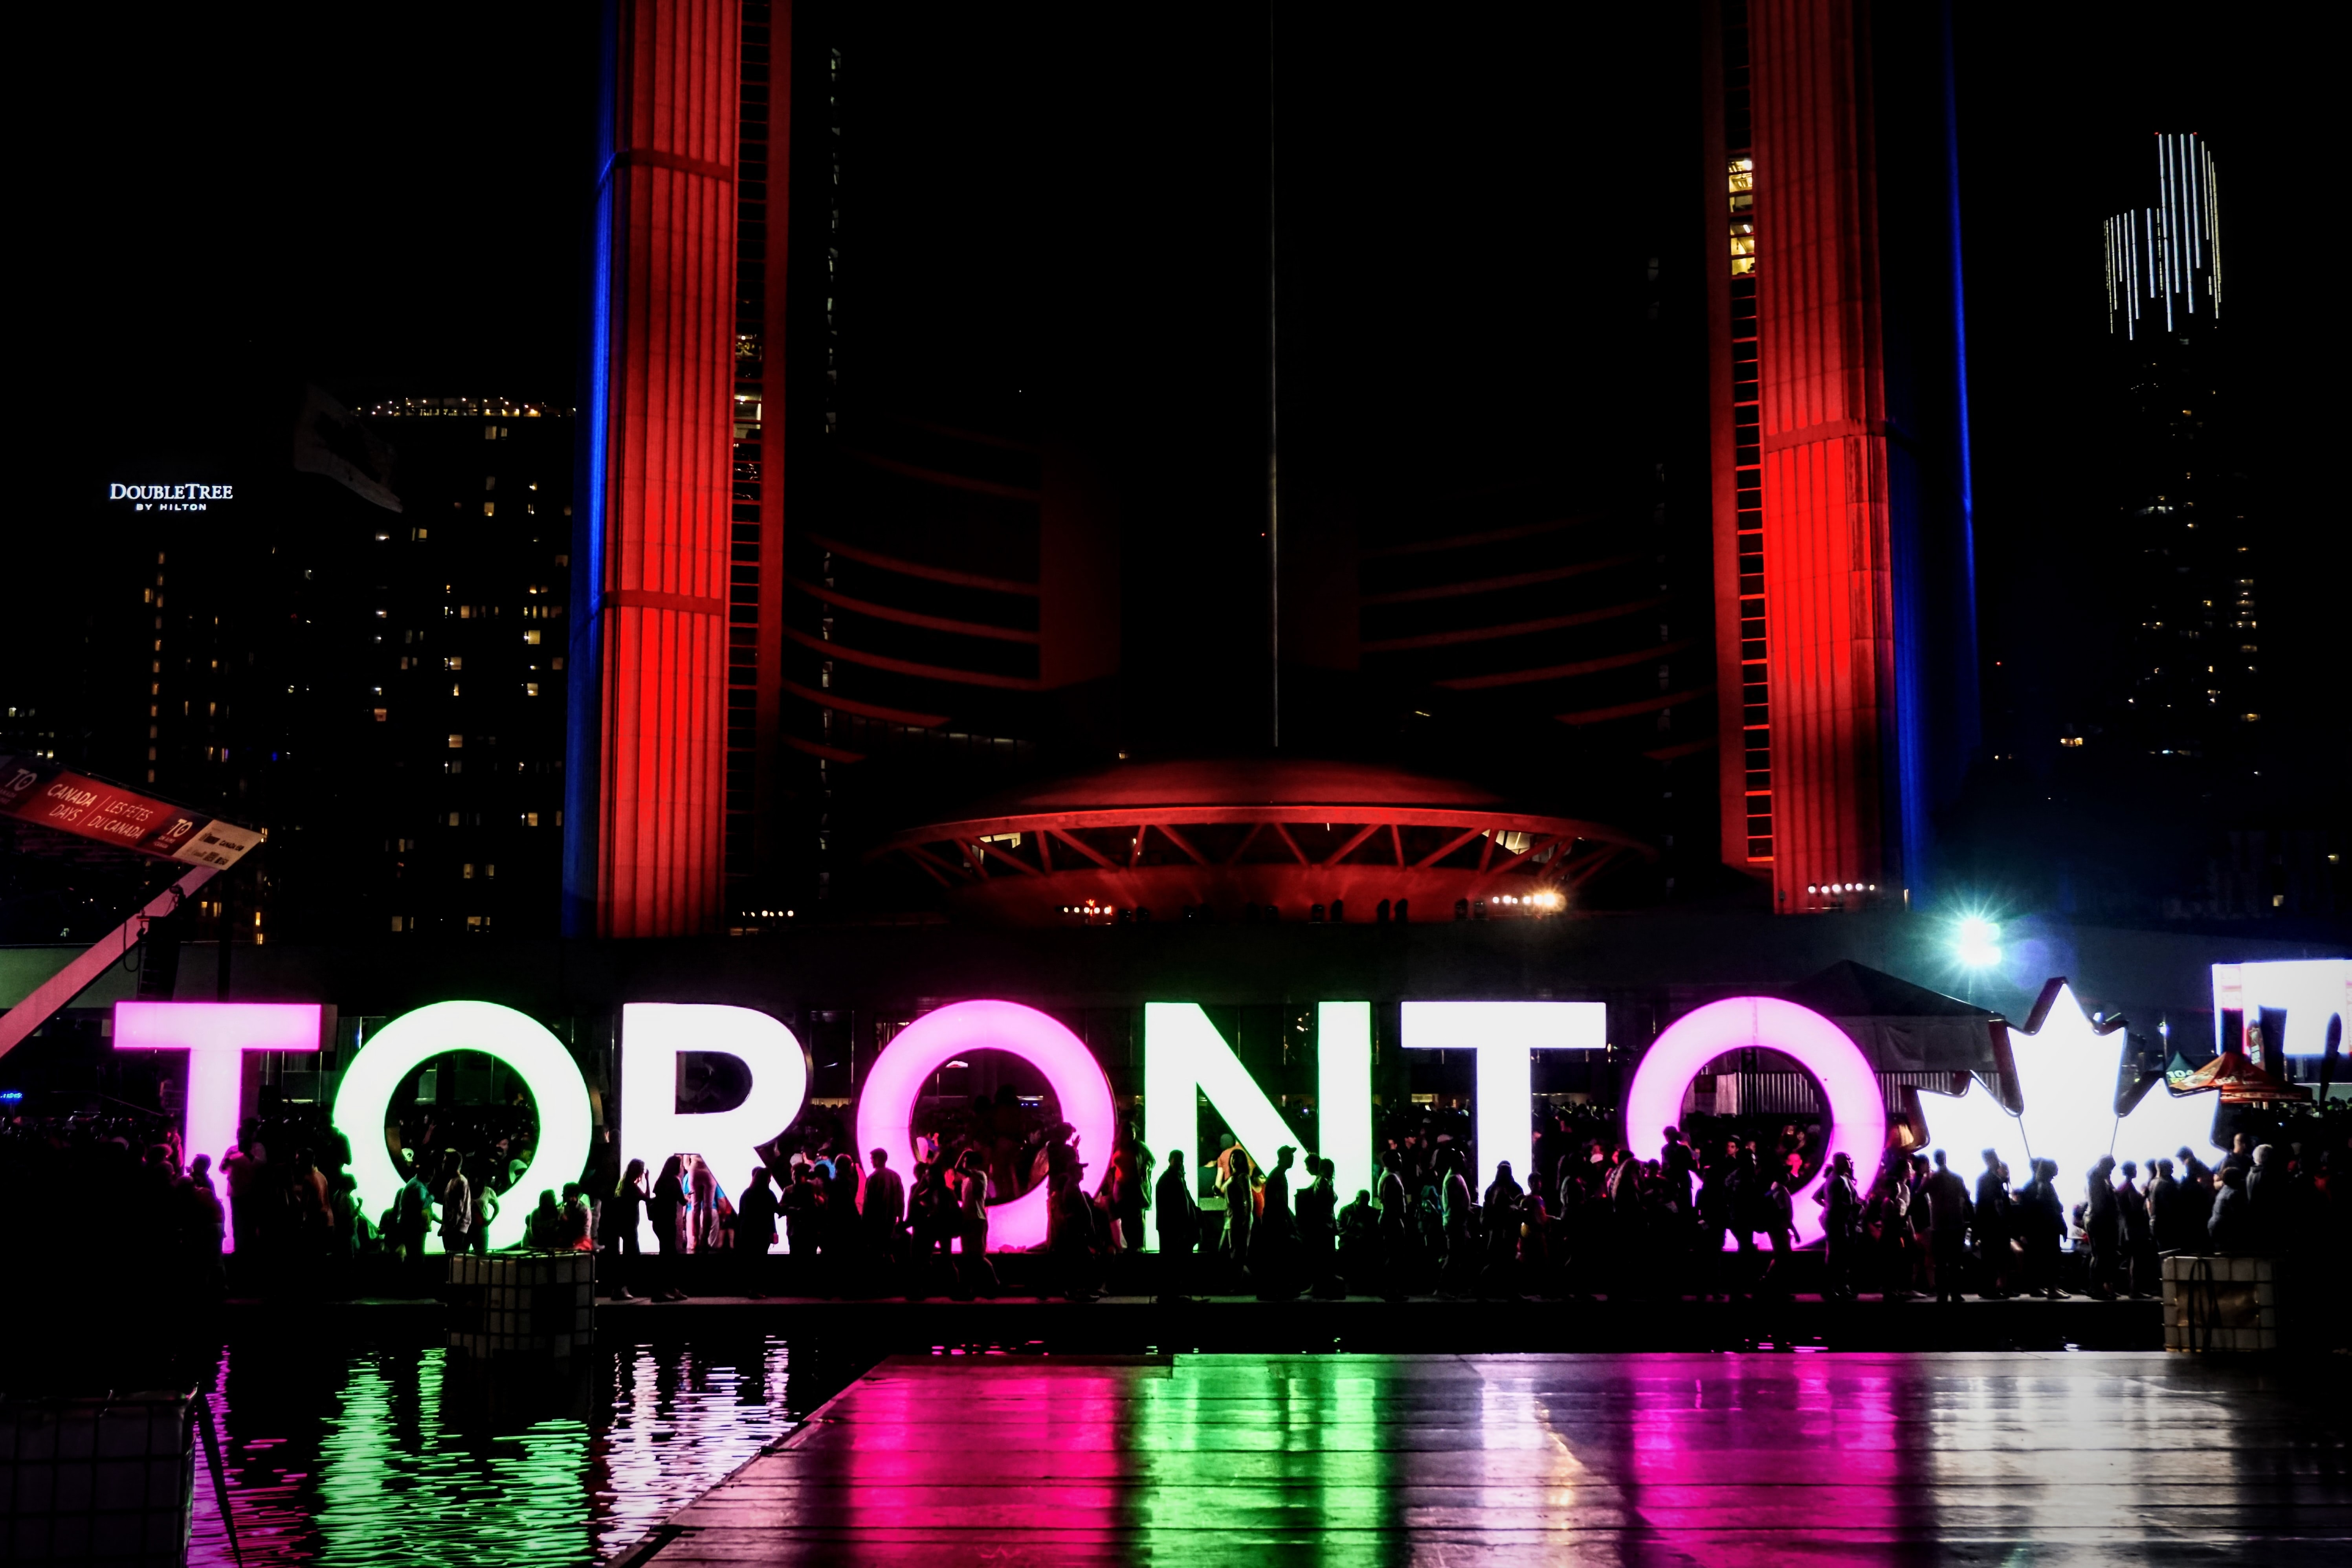 Editorial: what is wrong in Toronto?